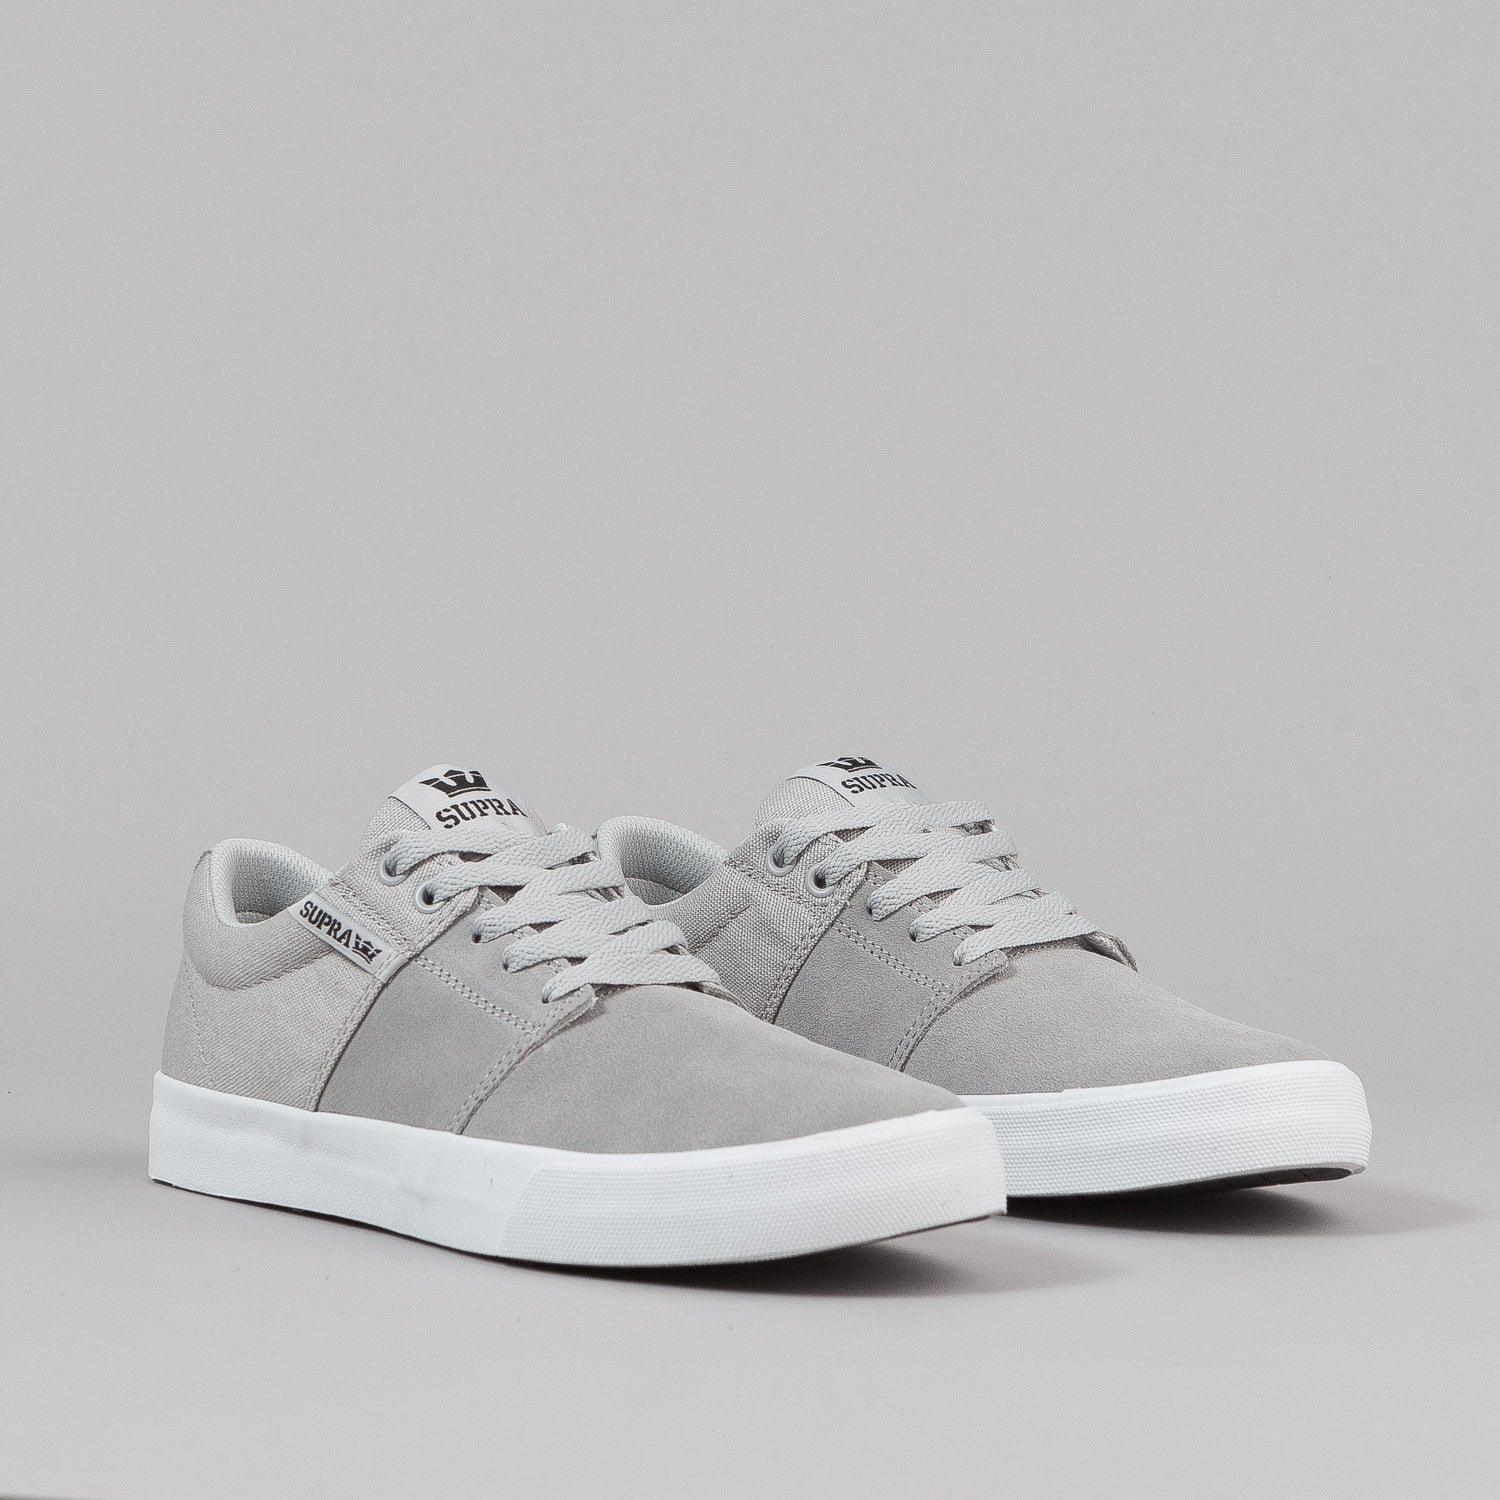 Supra Stacks Vulc II Shoes - Light Grey / White